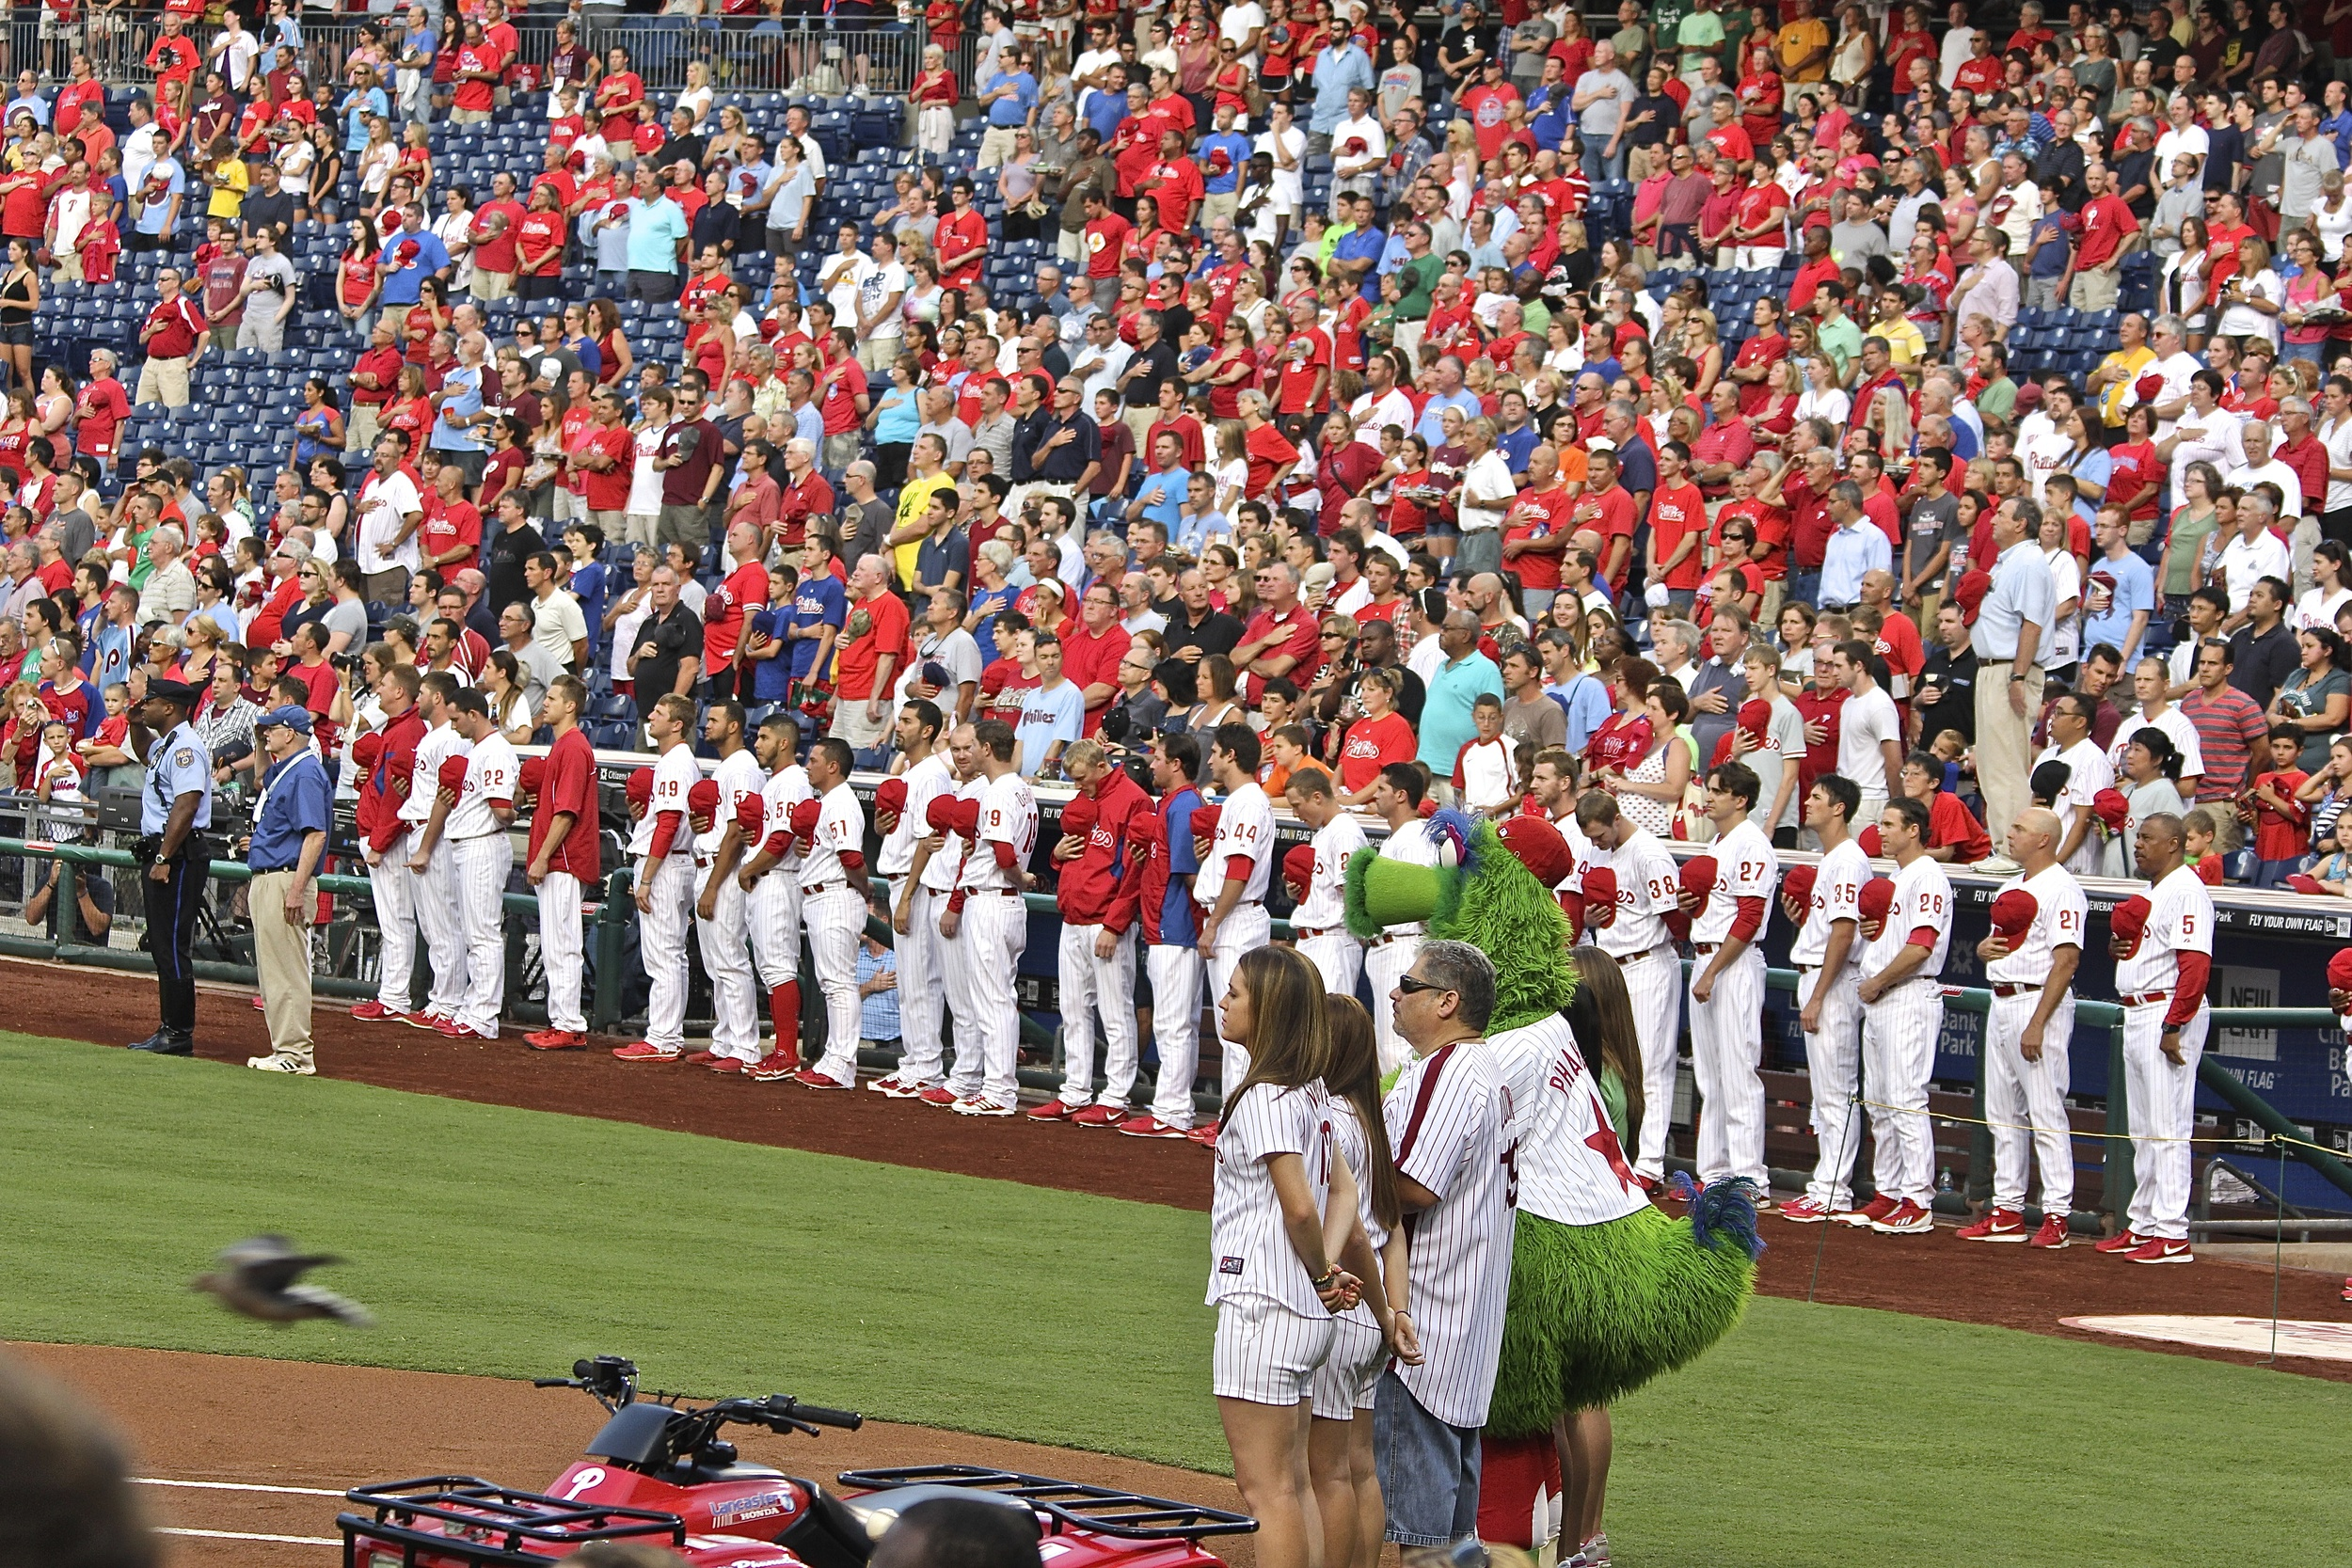 Phillies stand for National Anthem